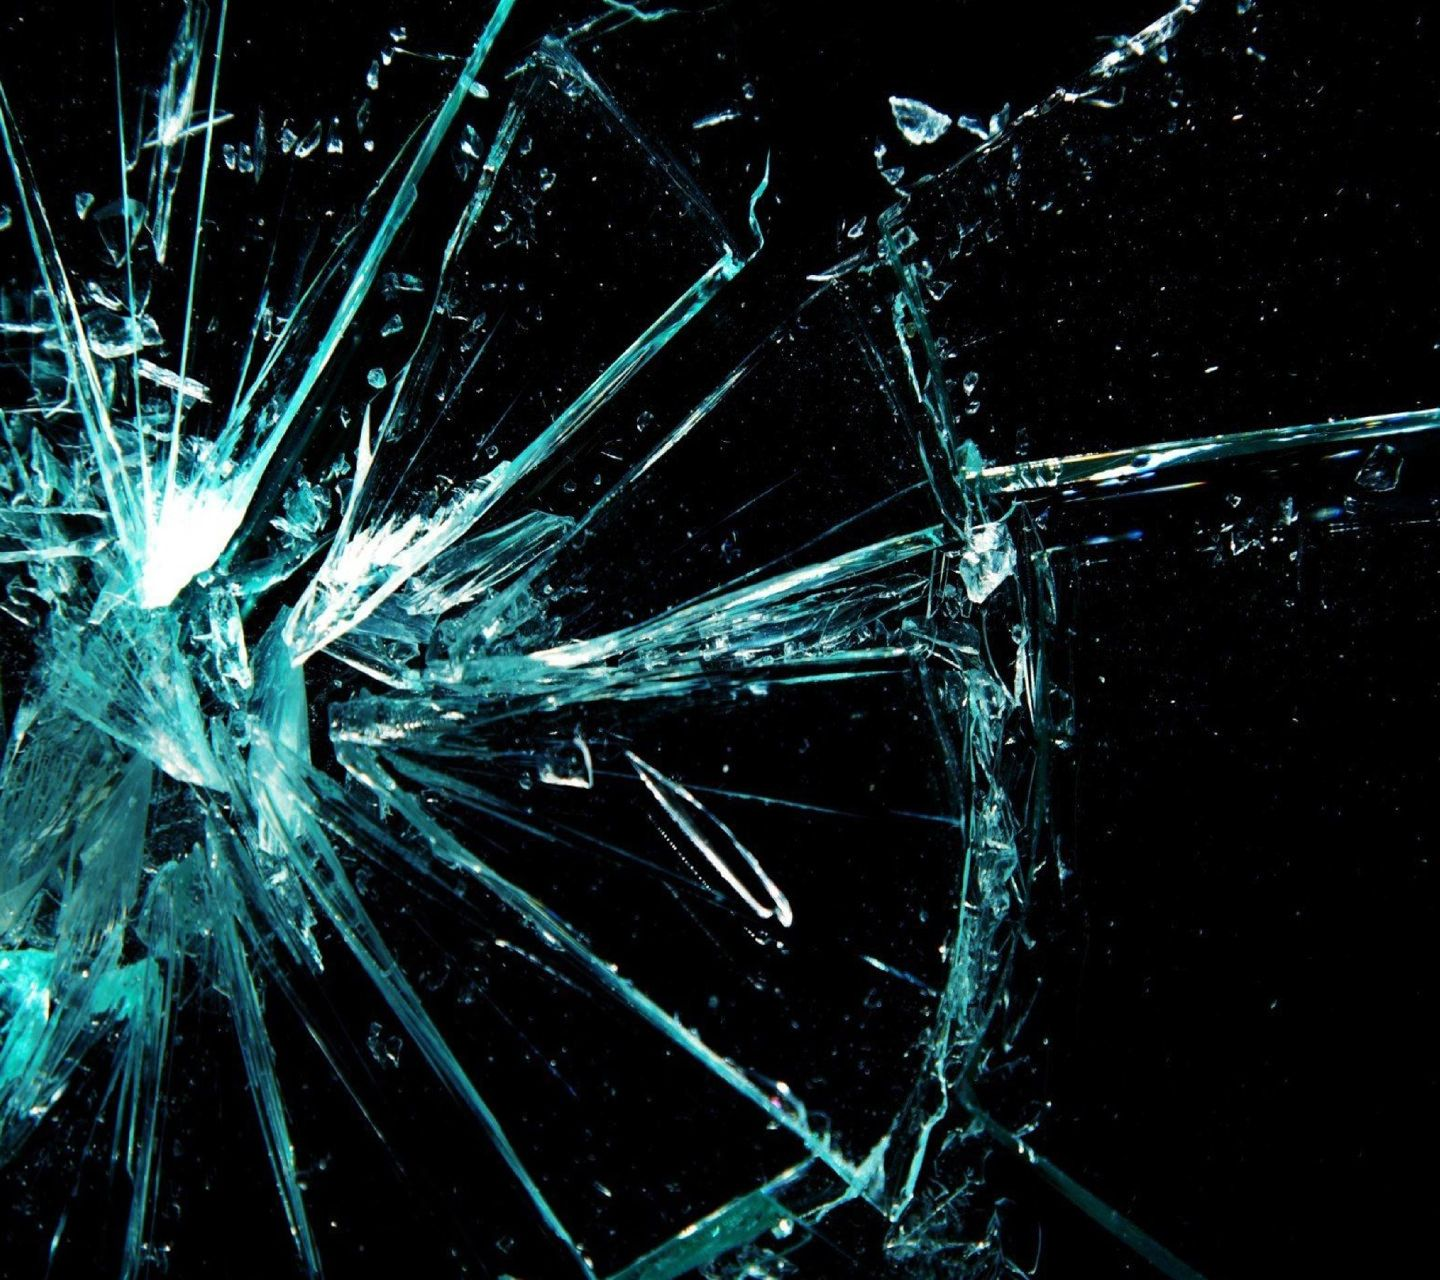 Broken glass screen wallpaper in hd 2018 wallpapers hd pinterest broken glass screen wallpaper in hd best wallpaper hd voltagebd Gallery